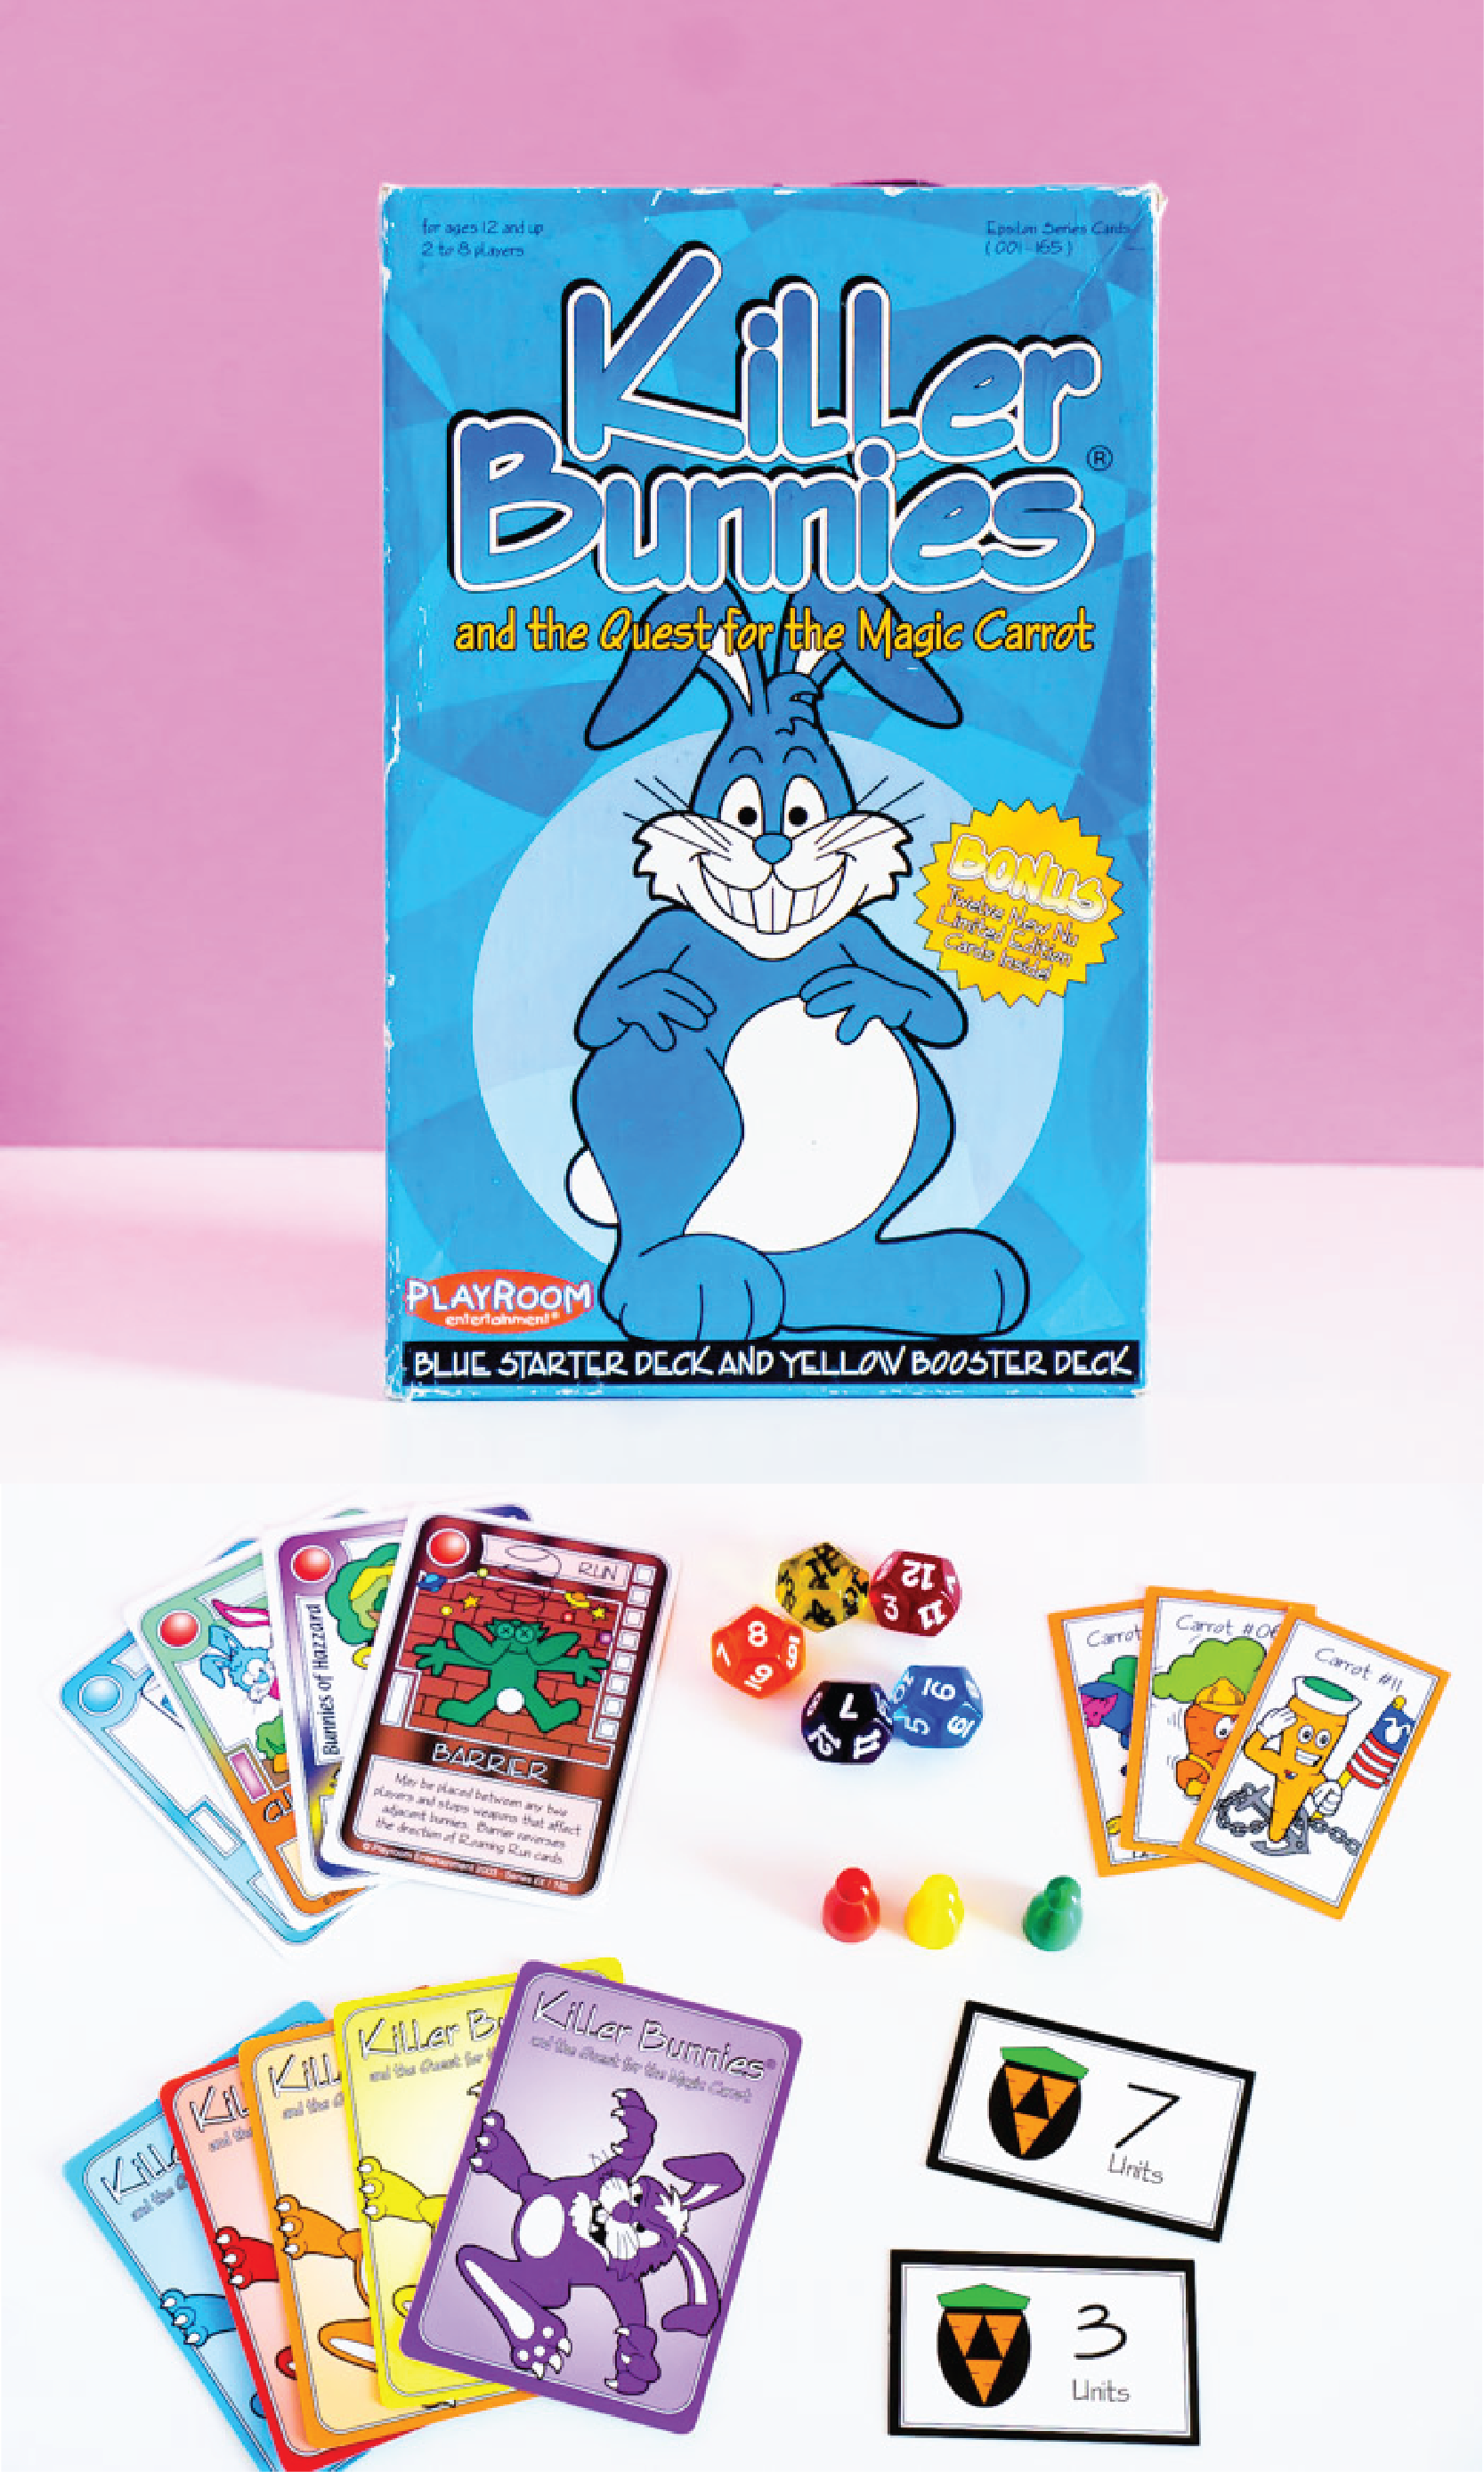 Killer Bunnies is one of the most fun card games for adults